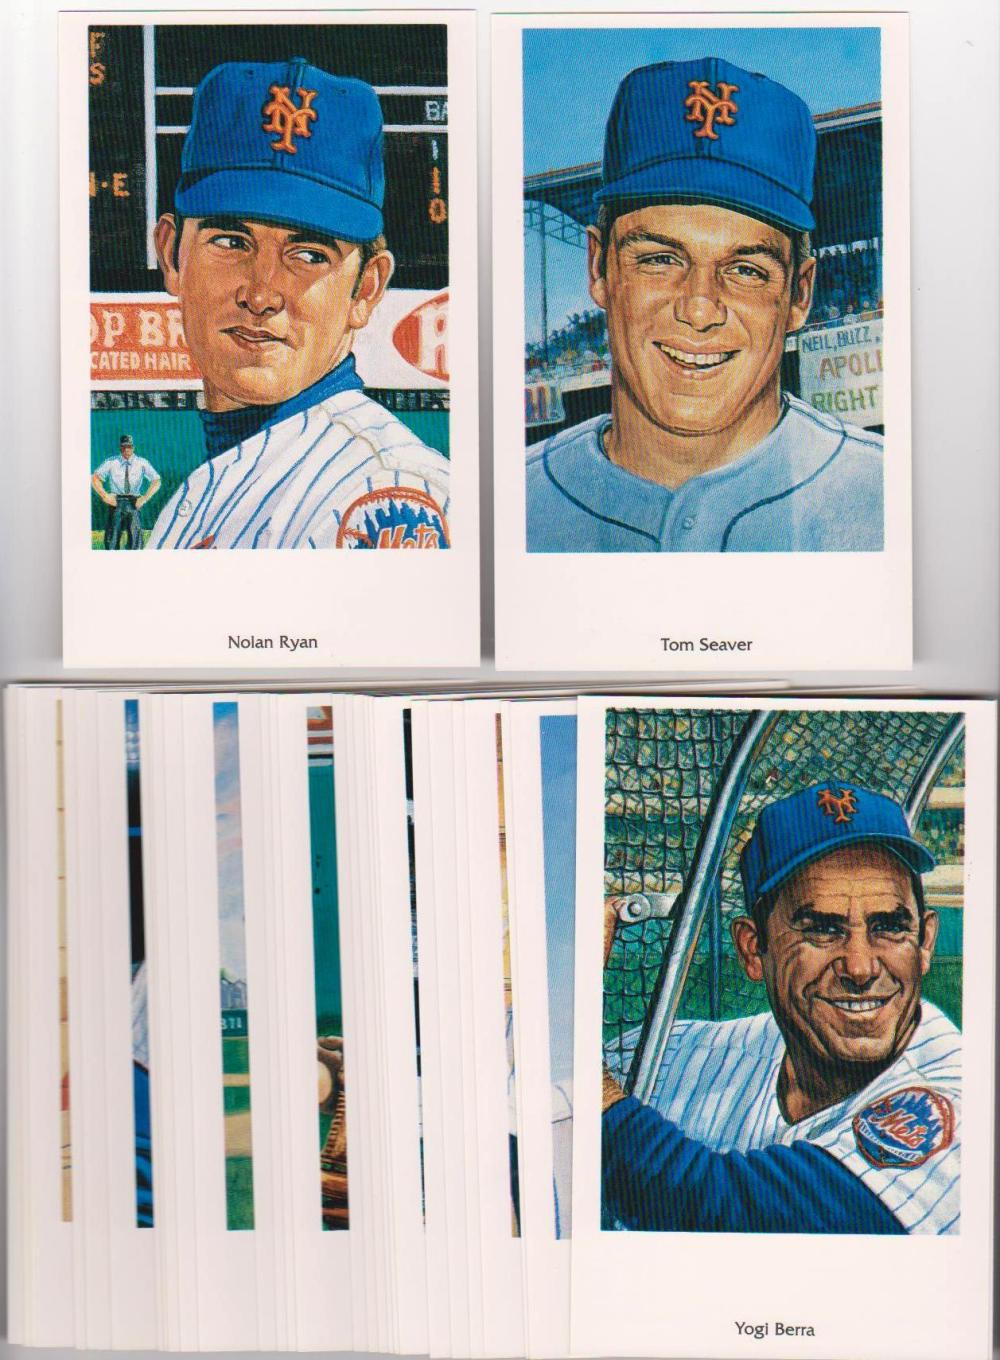 1994 25th Anniversary 1969 Miracle Mets 32 Card Postcard Set - Nolan Ryan + More